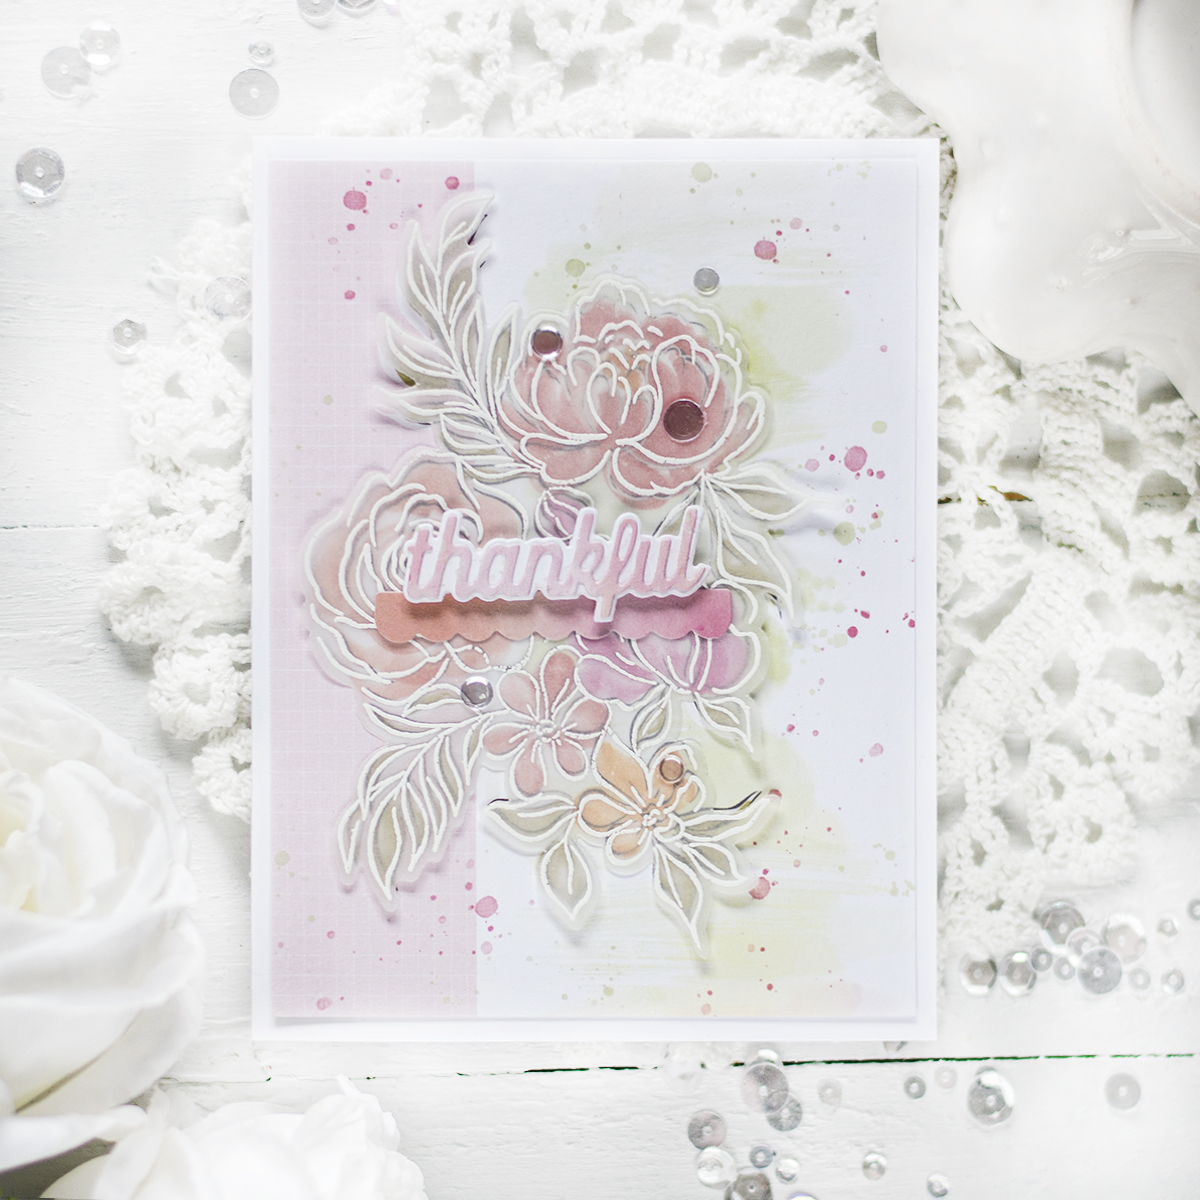 Using Vellum With Patterned Paper. Card by Svitlana Shayevich